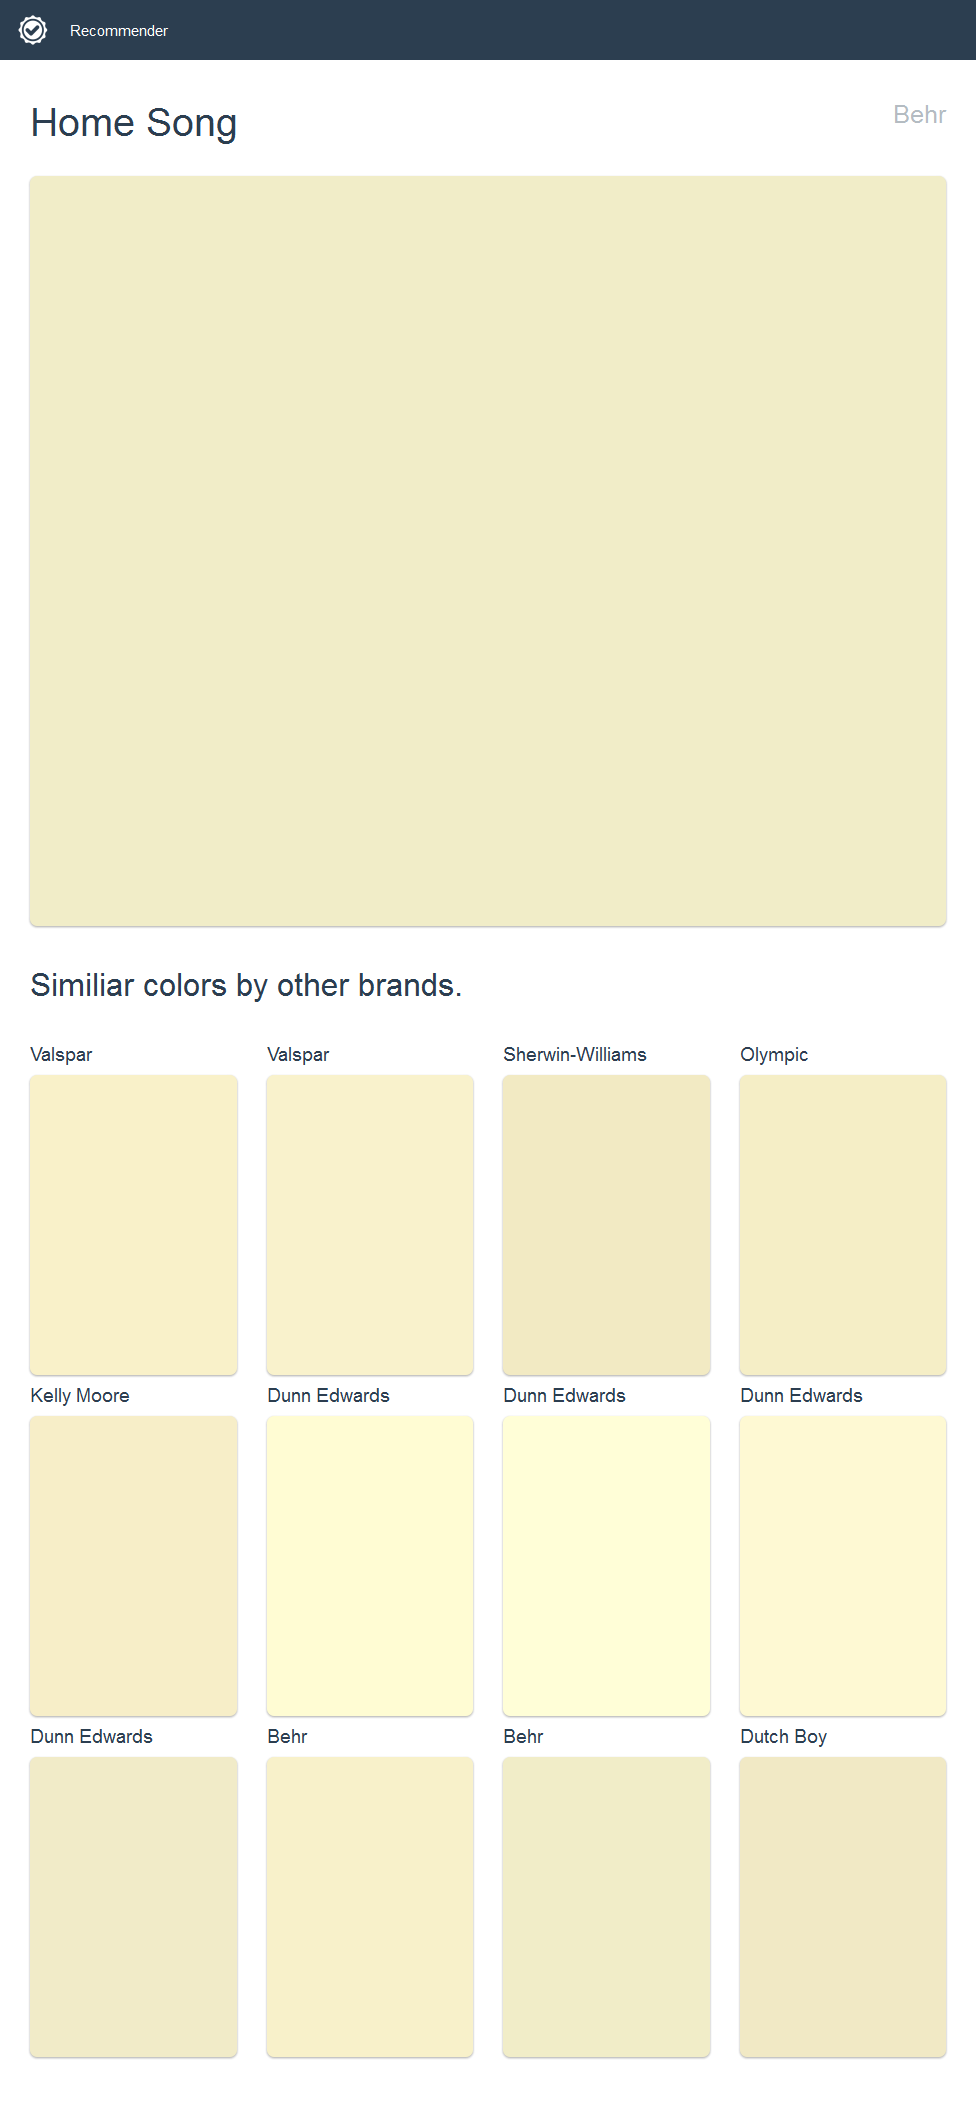 home song behr click the image to see similiar colors by on valspar paint visualizer interior id=54134